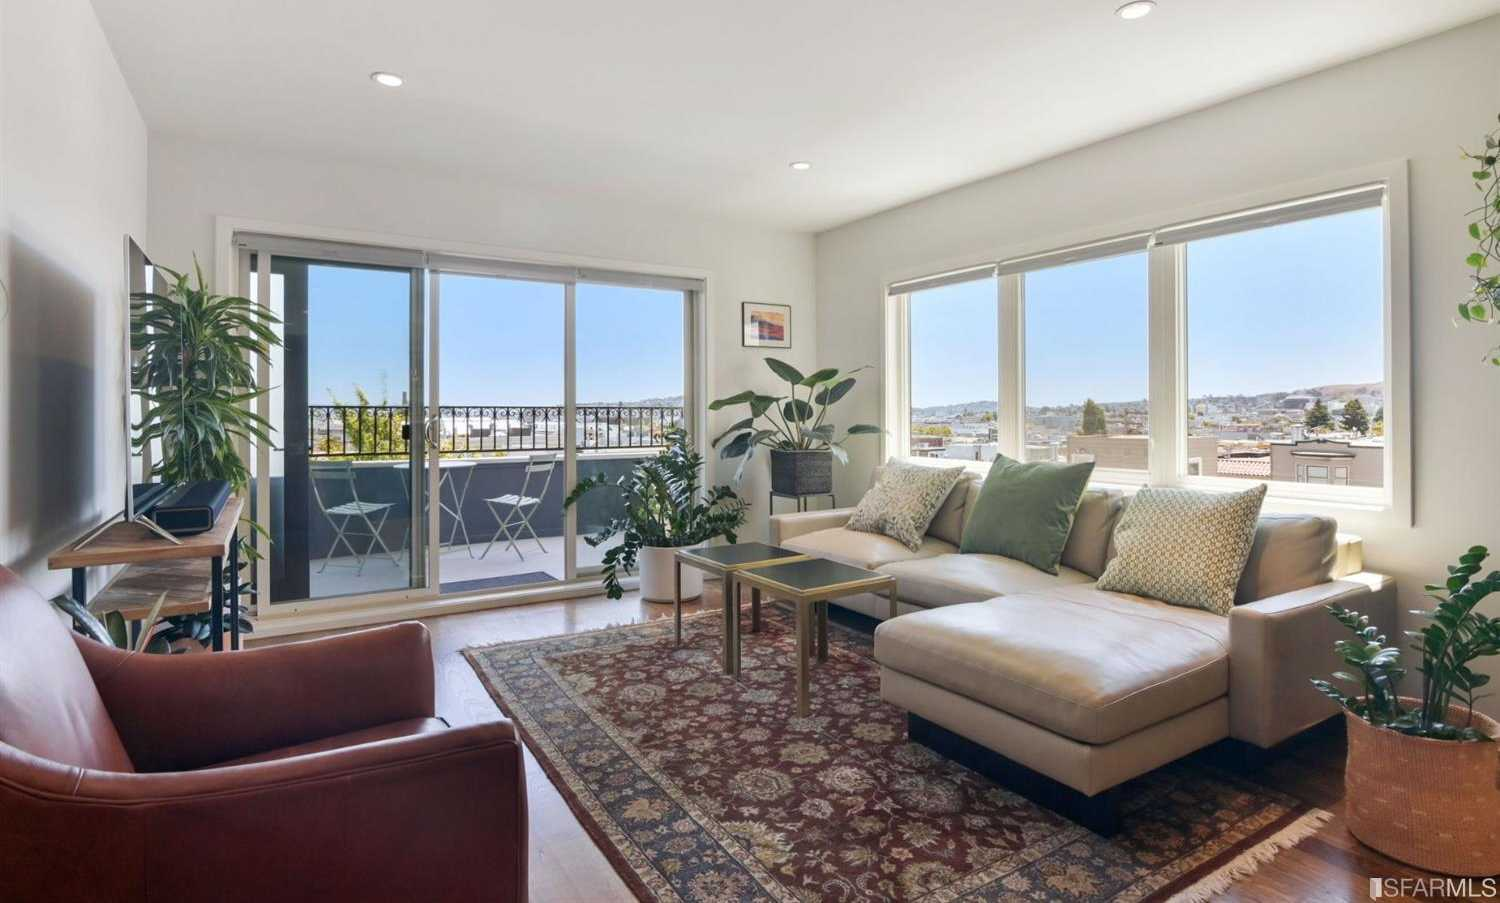 $1,450,000 - 2Br/2Ba -  for Sale in San Francisco